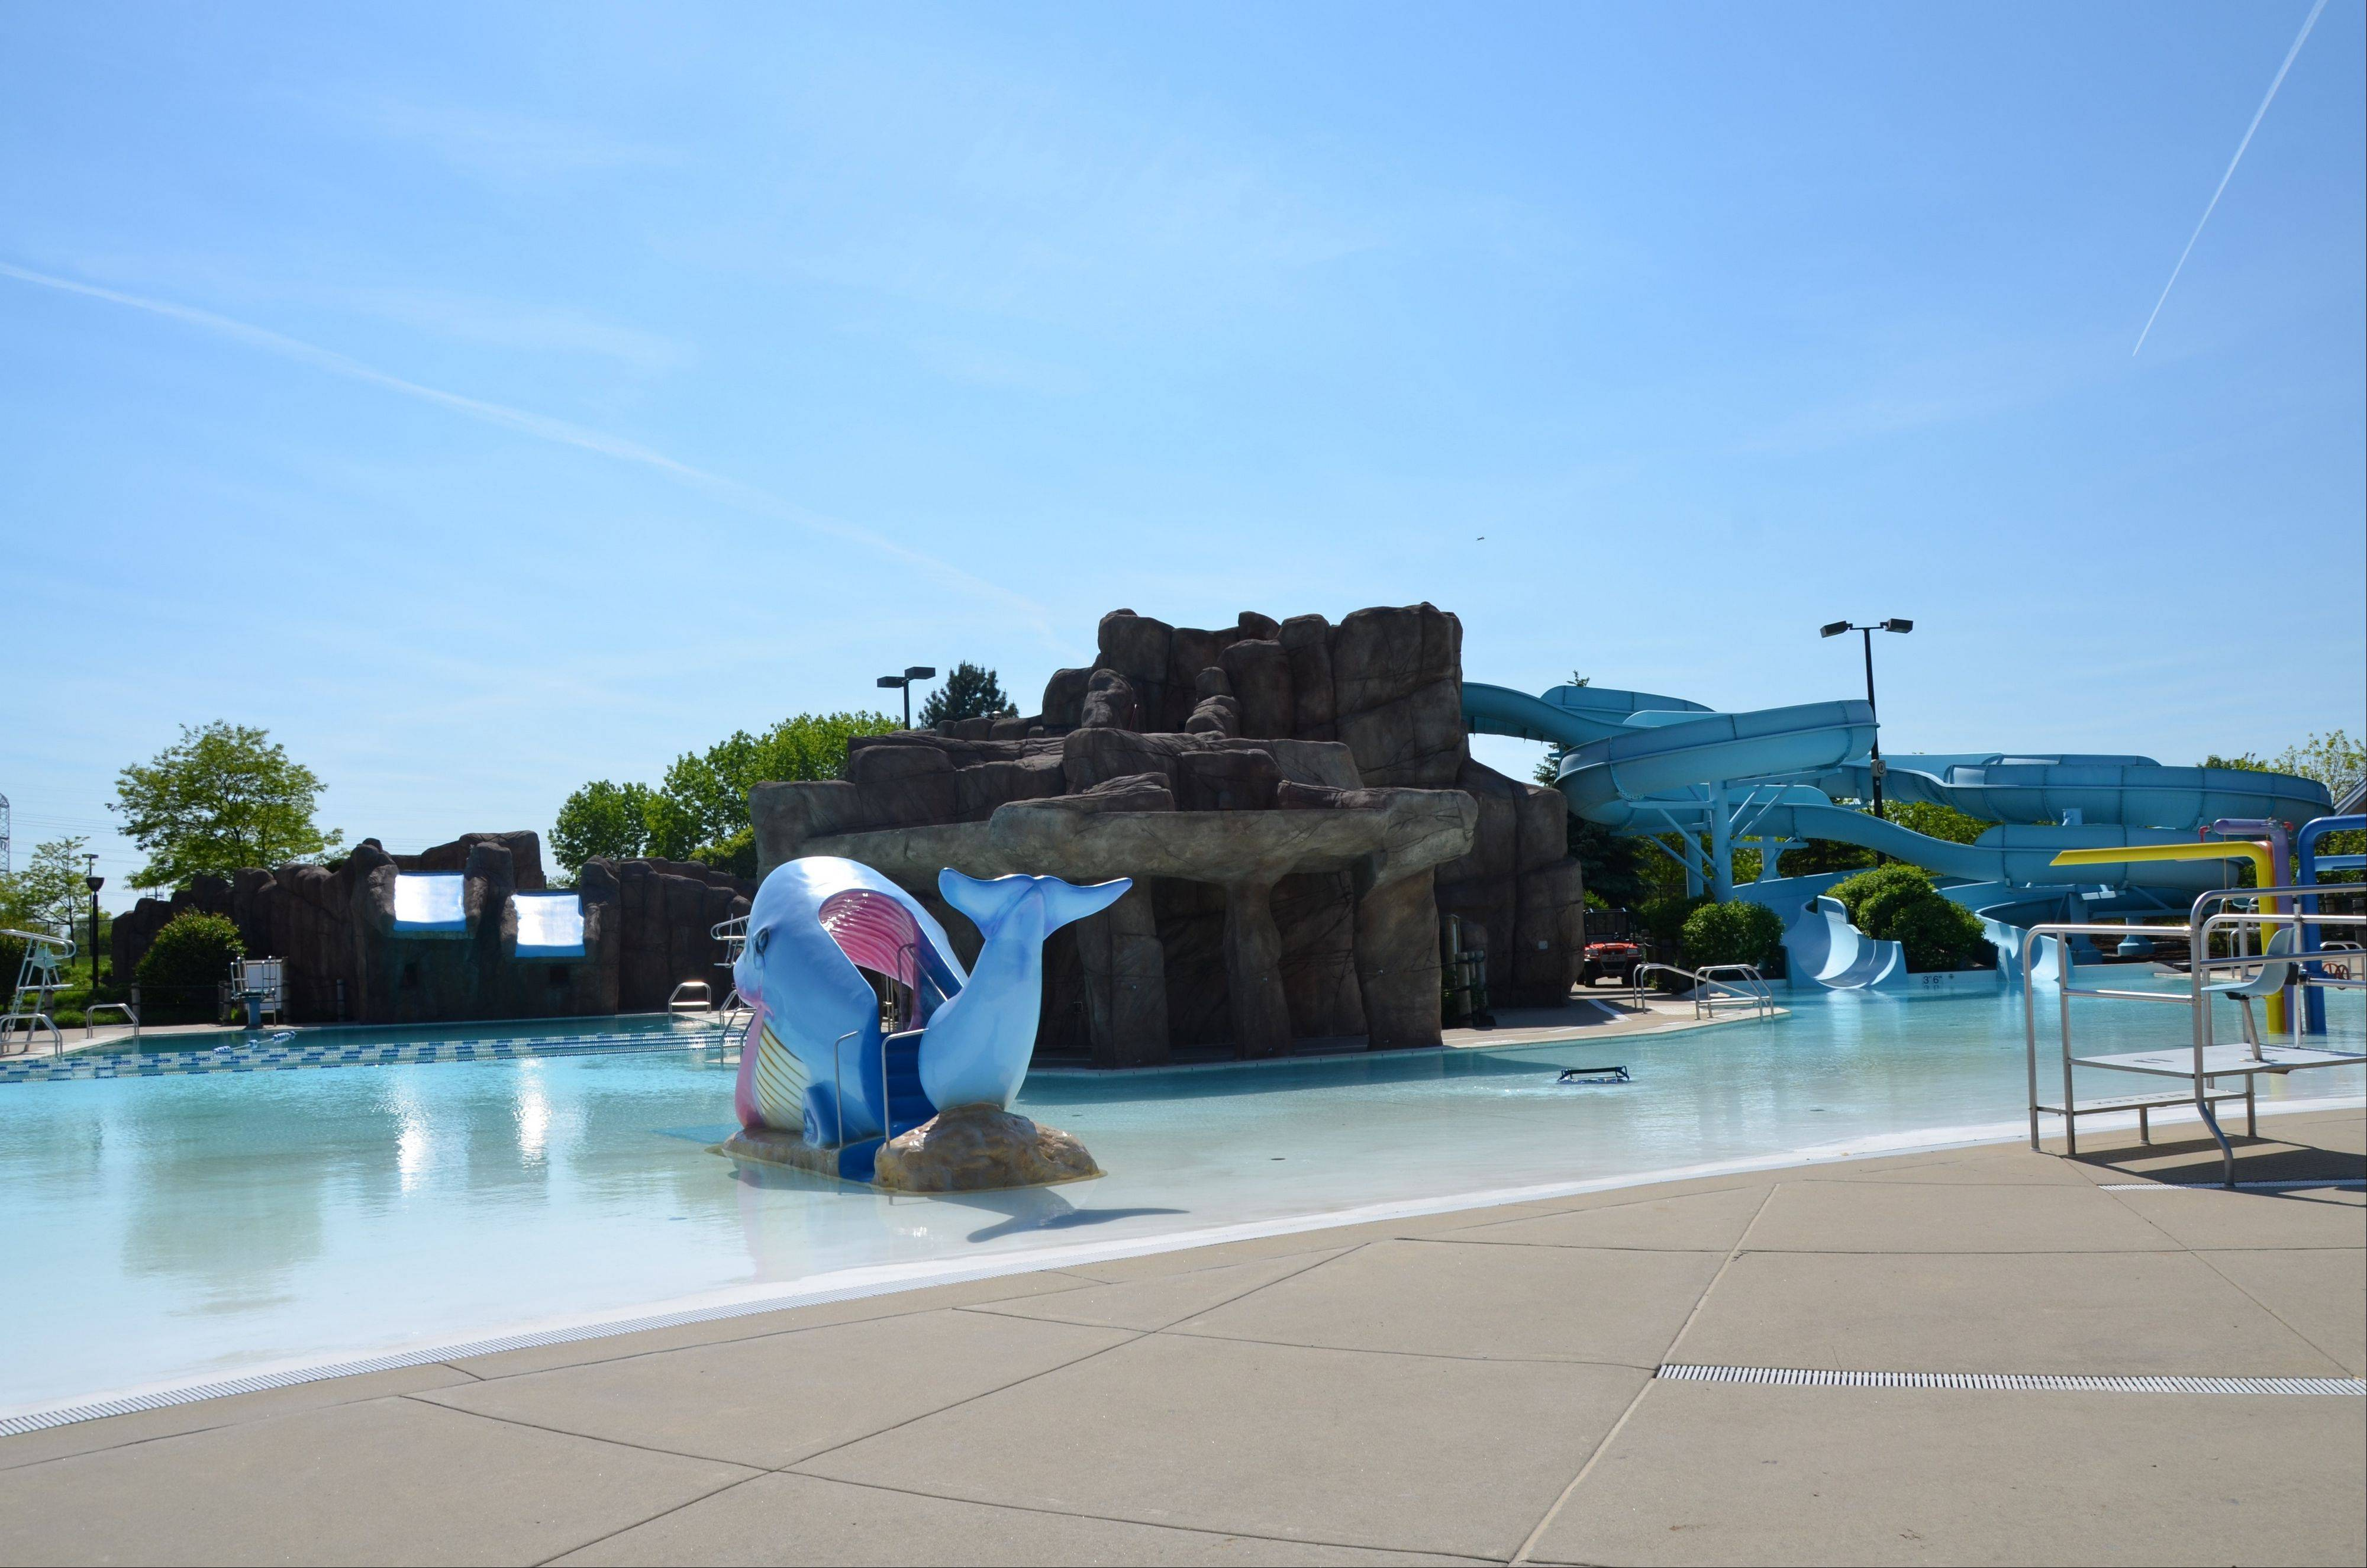 Wheeling Park District's Family Aquatic Center was named one of the 10 best beaches and pools in the Chicago area by Crain's Chicago Business.